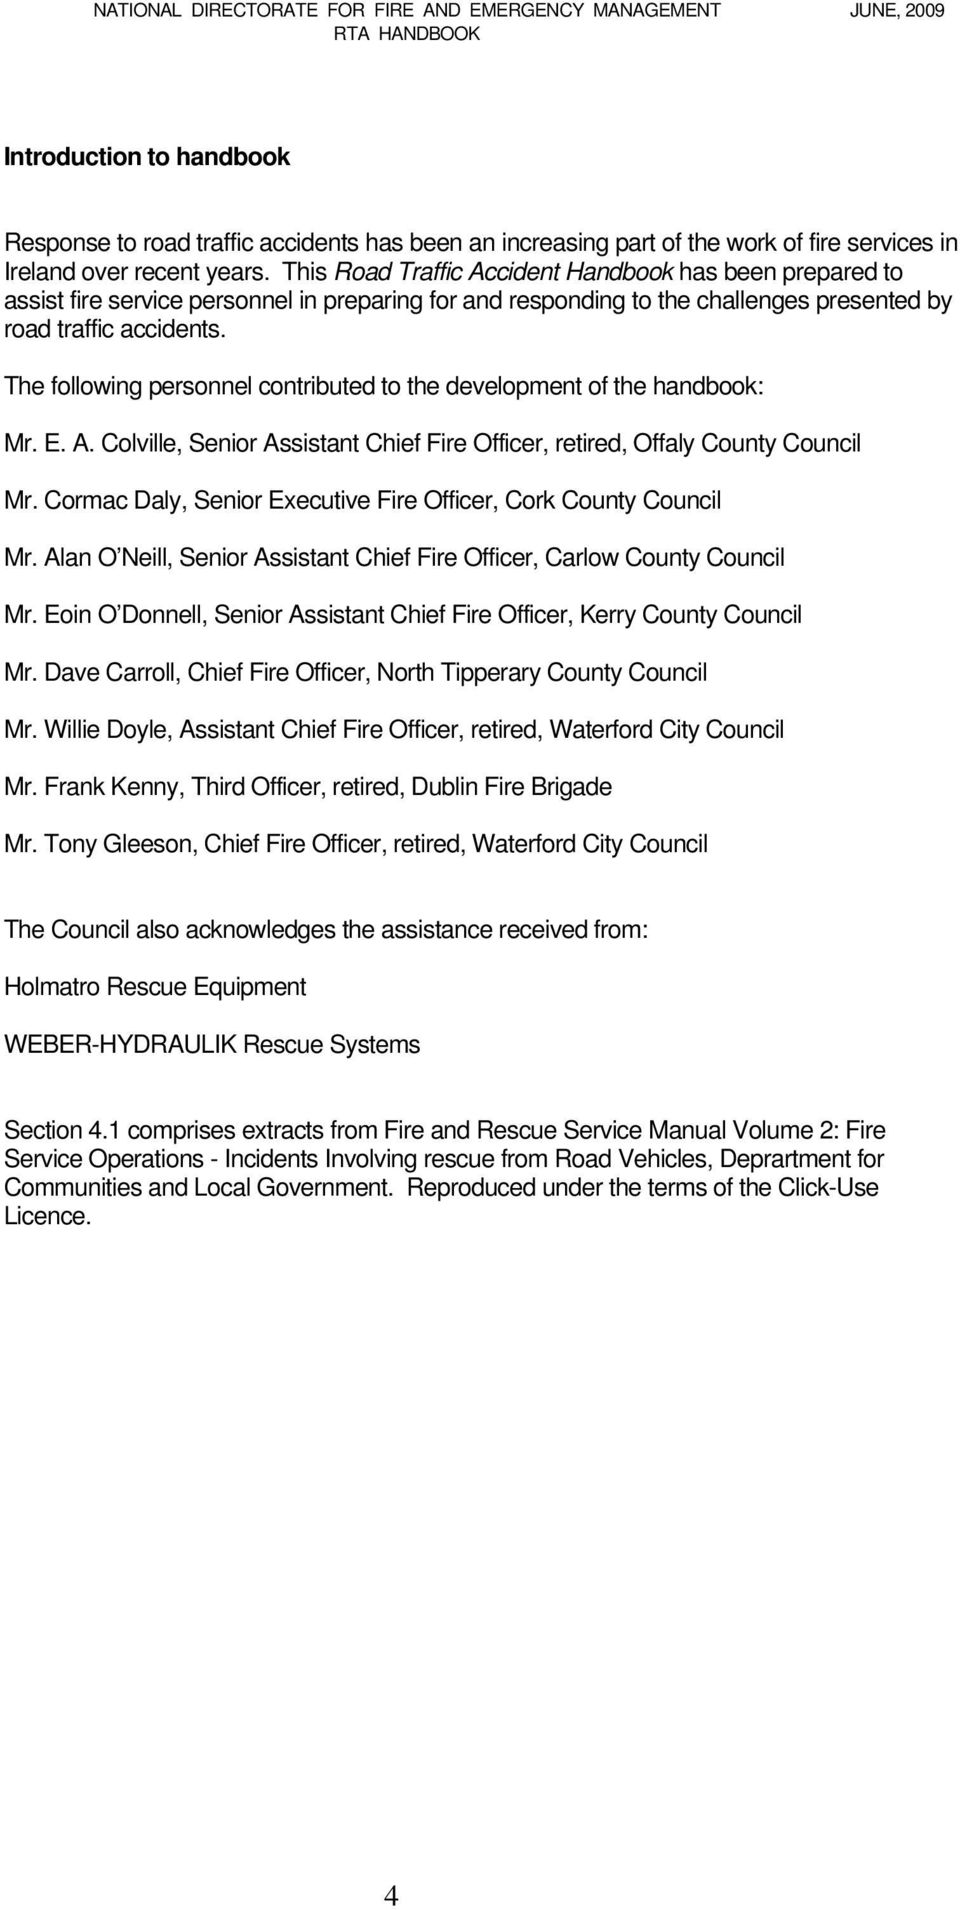 The following personnel contributed to the development of the handbook: Mr. E. A. Colville, Senior Assistant Chief Fire Officer, retired, Offaly County Council Mr.